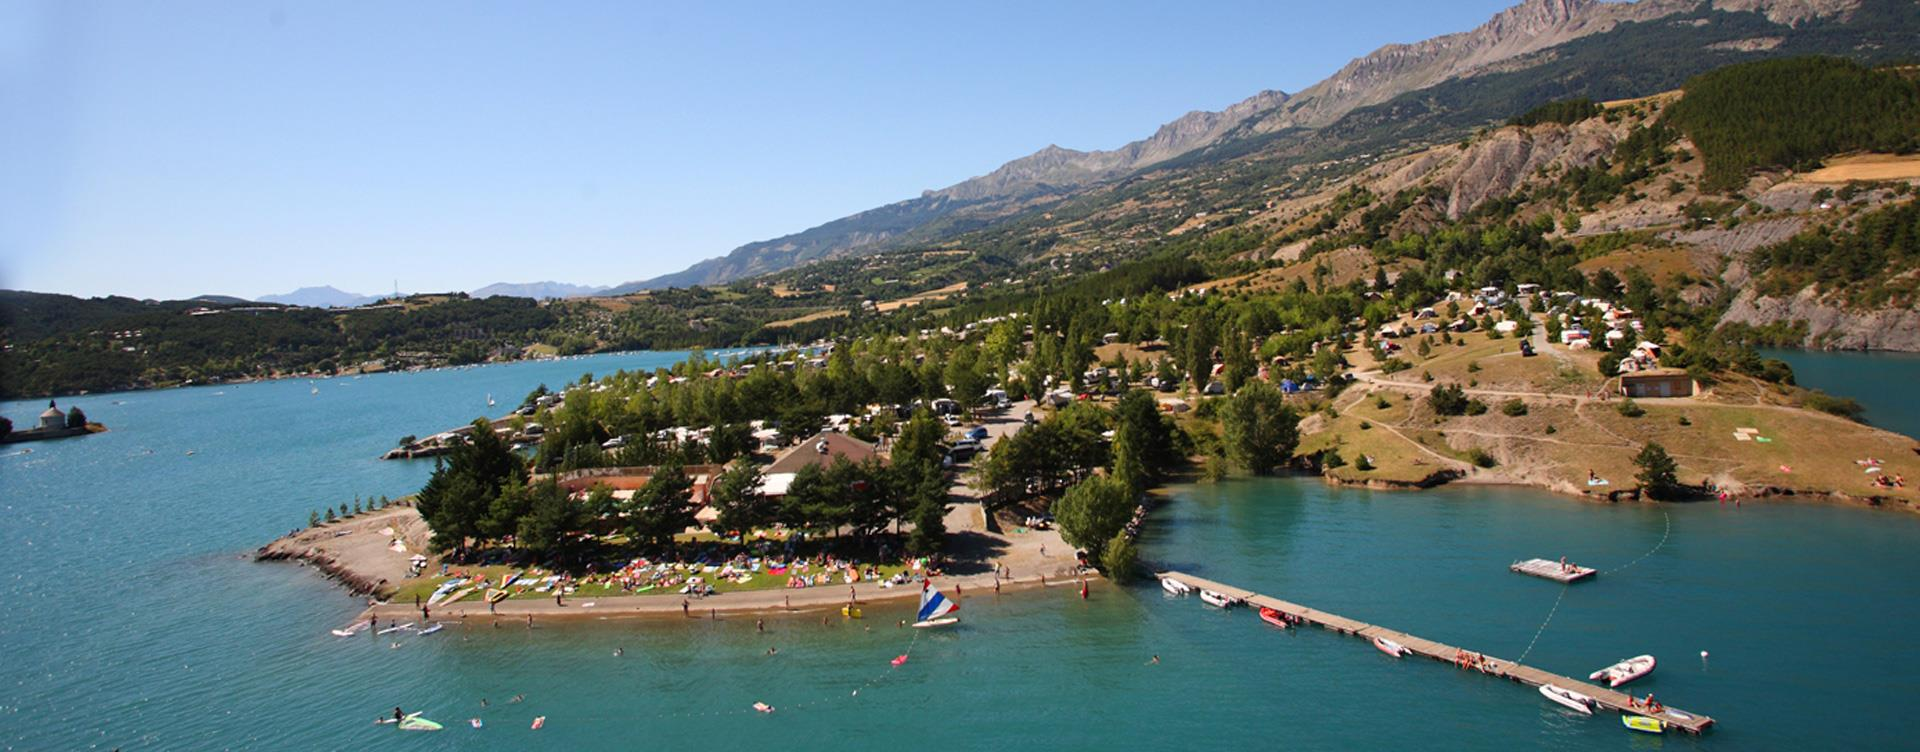 Aerial view of the Serre-Ponçon Lake